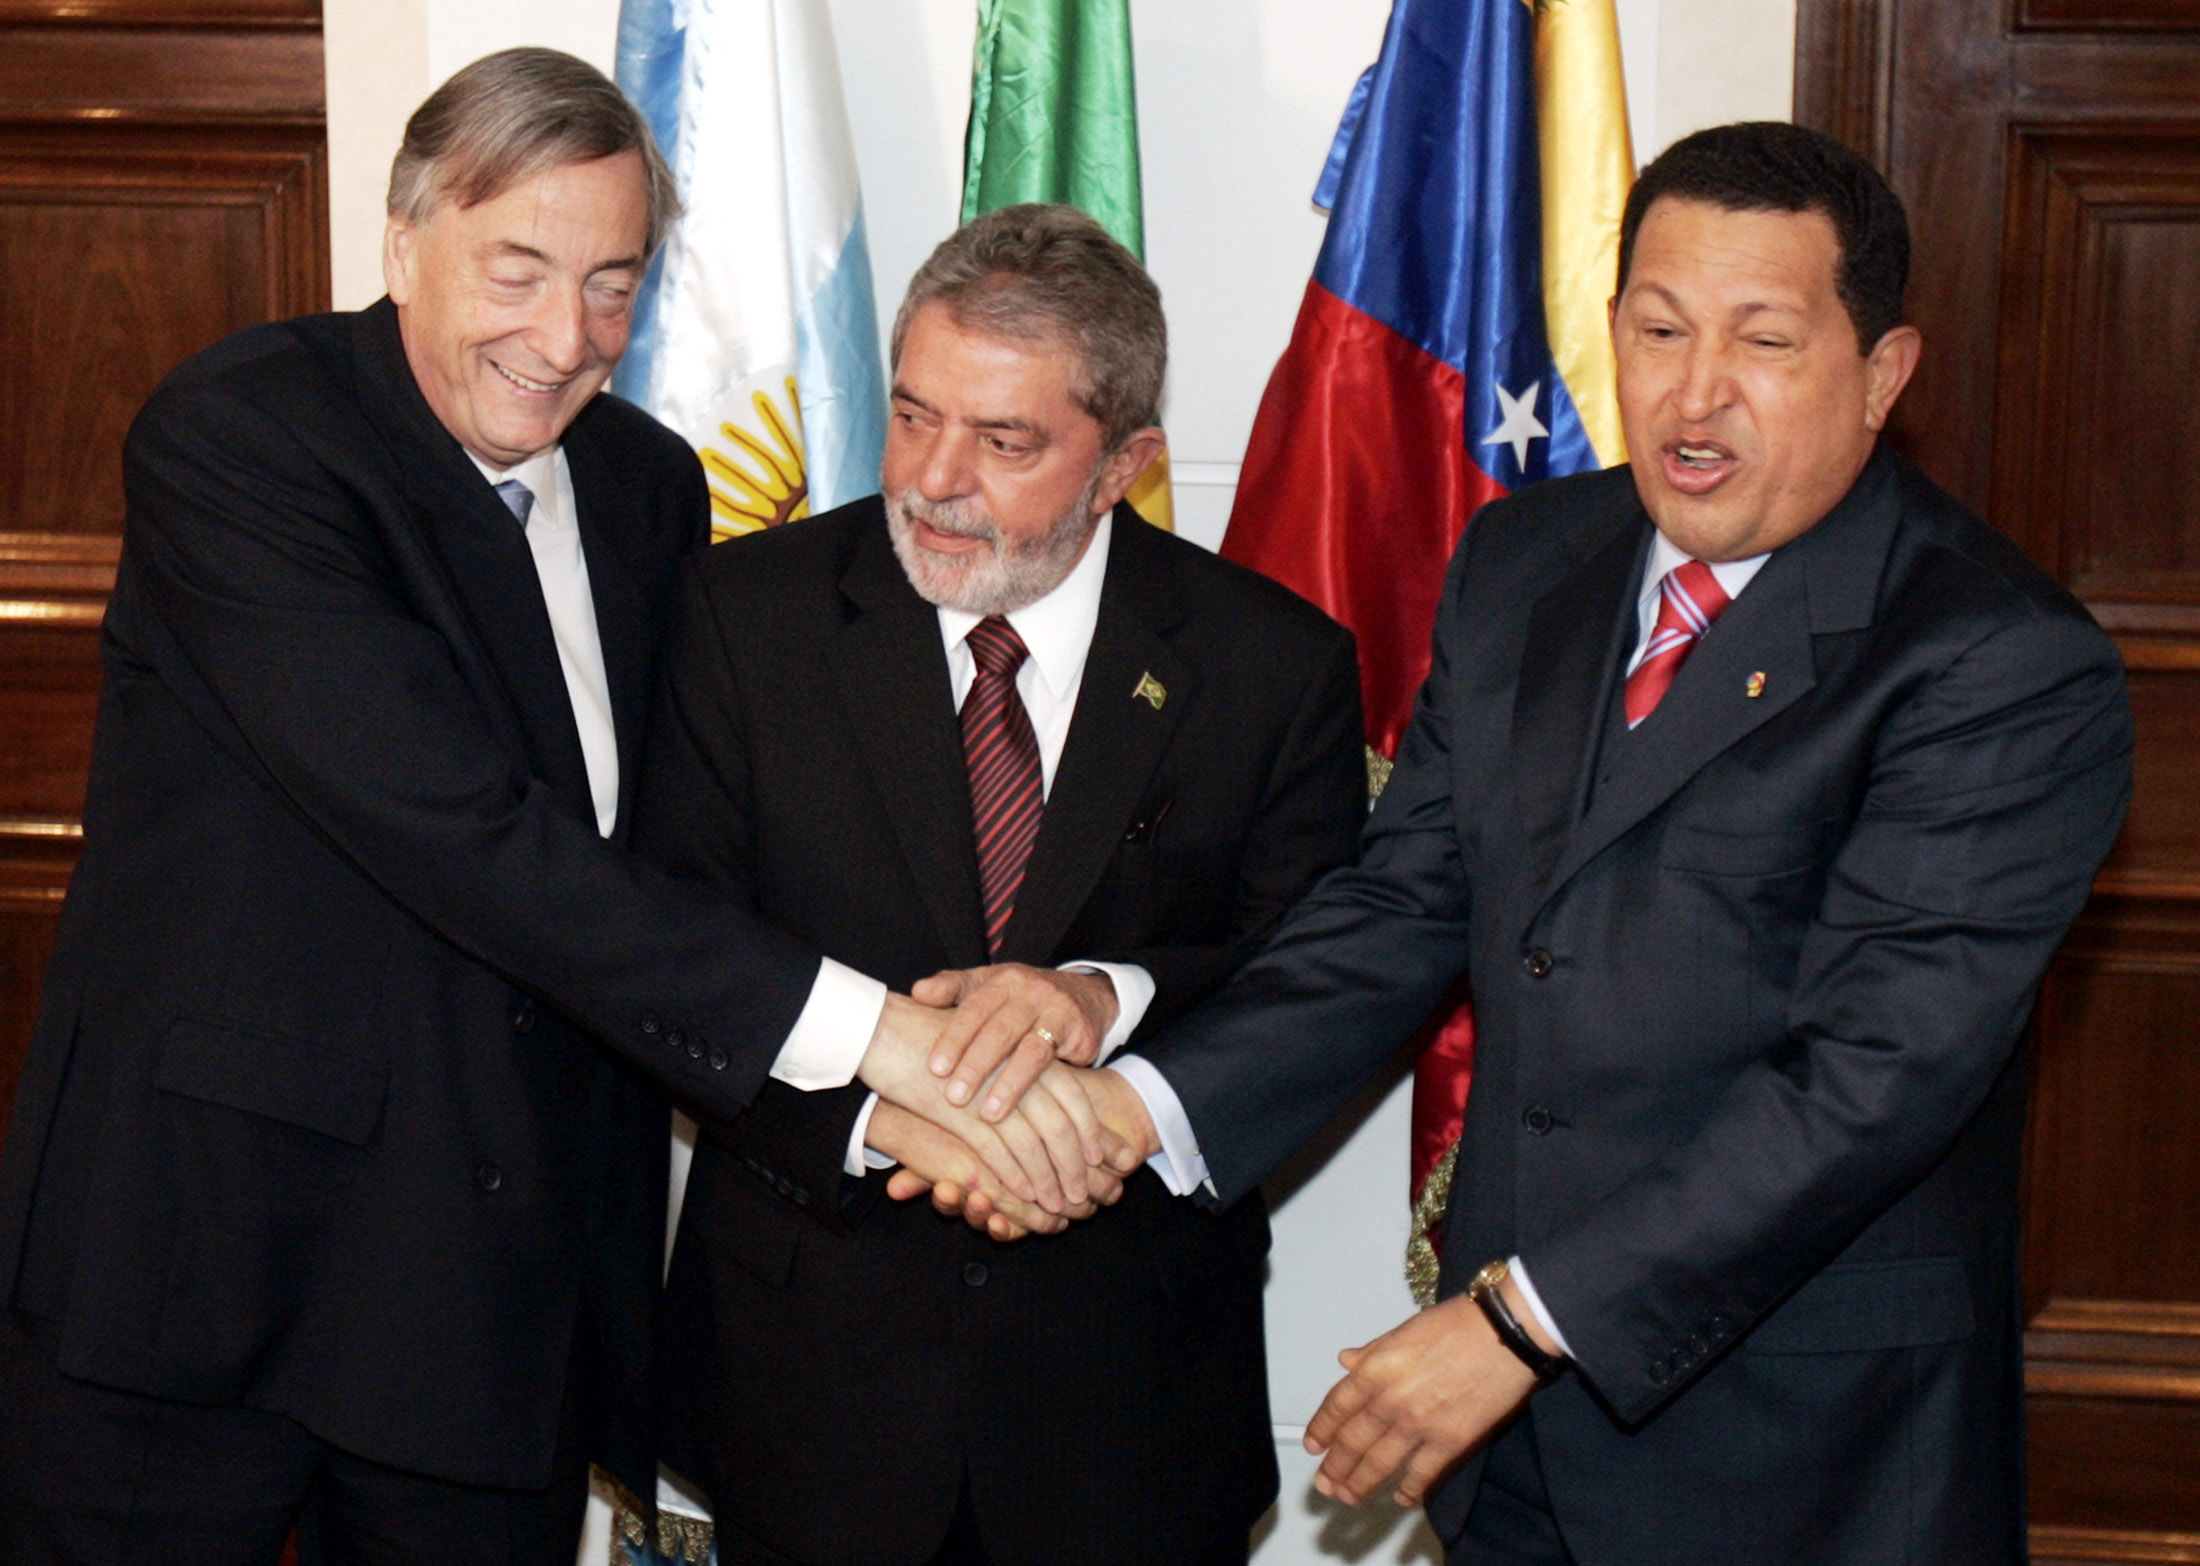 Brazil's President Luiz Inacio Lula da Silva (C) shakes hands with his counterparts, Argentina's Nestor Kirchner (L) and Venezuela's Hugo Chavez, in Sao Paulo April 26, 2006. ©REUTERS/Paulo Whitaker